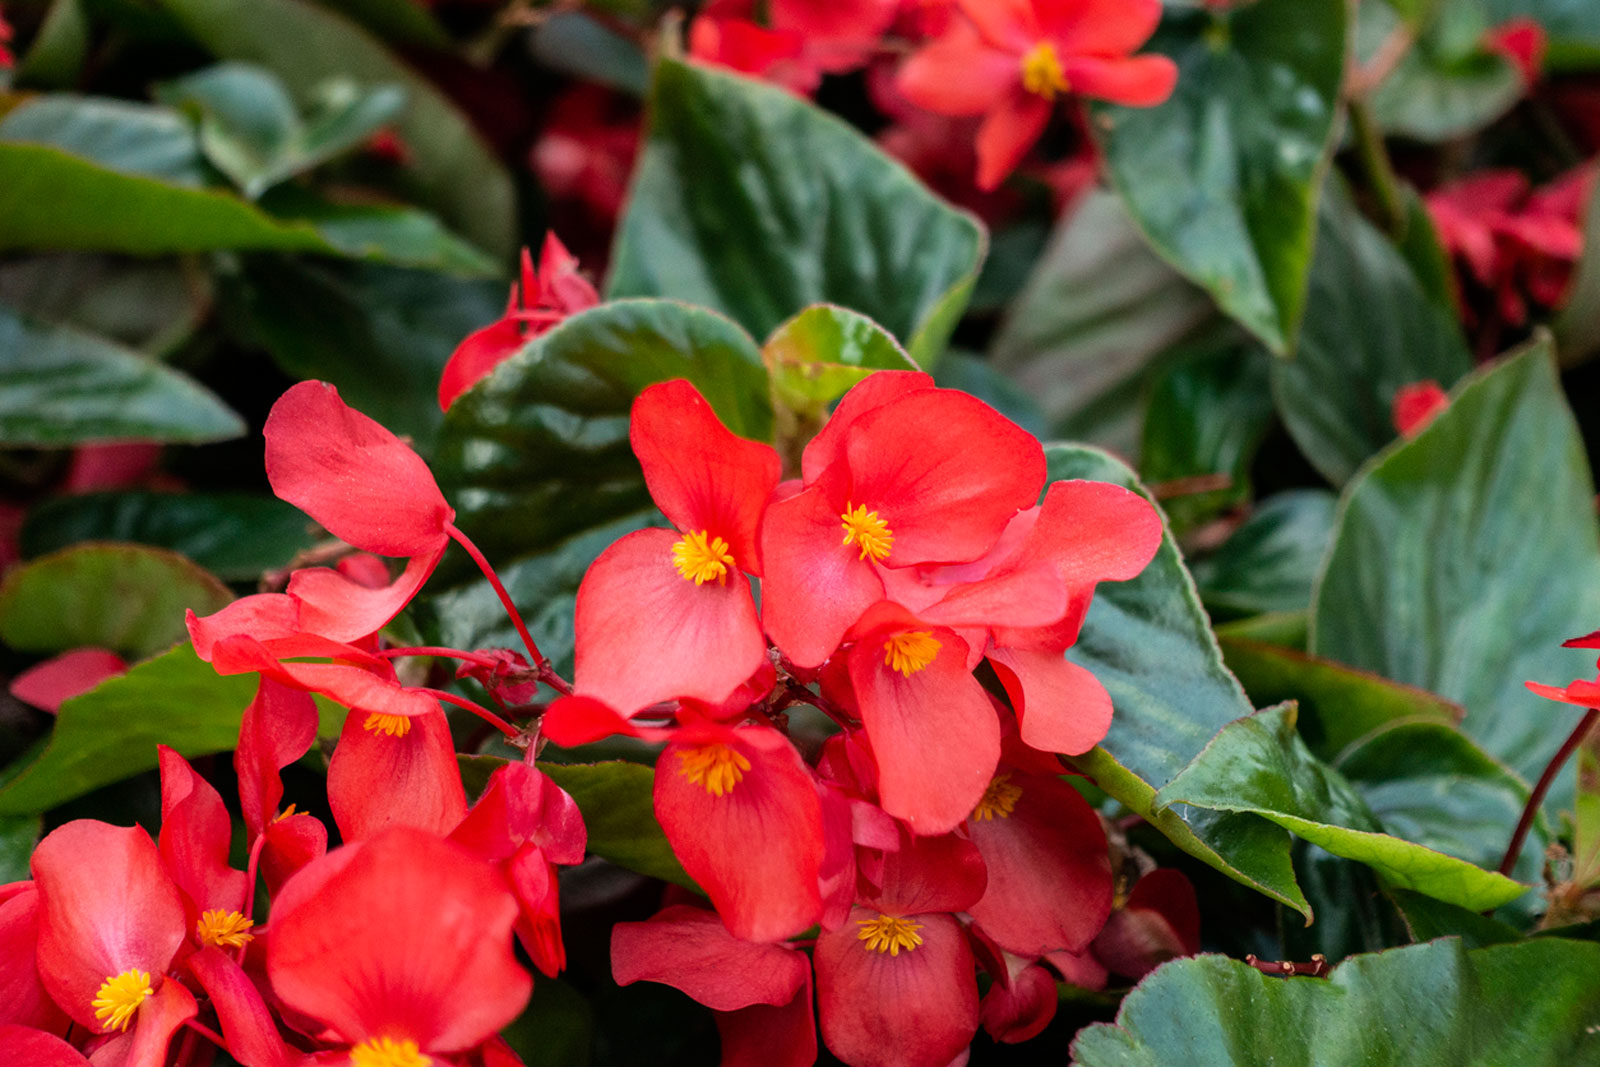 Growing Annual Begonia Plants Information On How To Grow Begonias